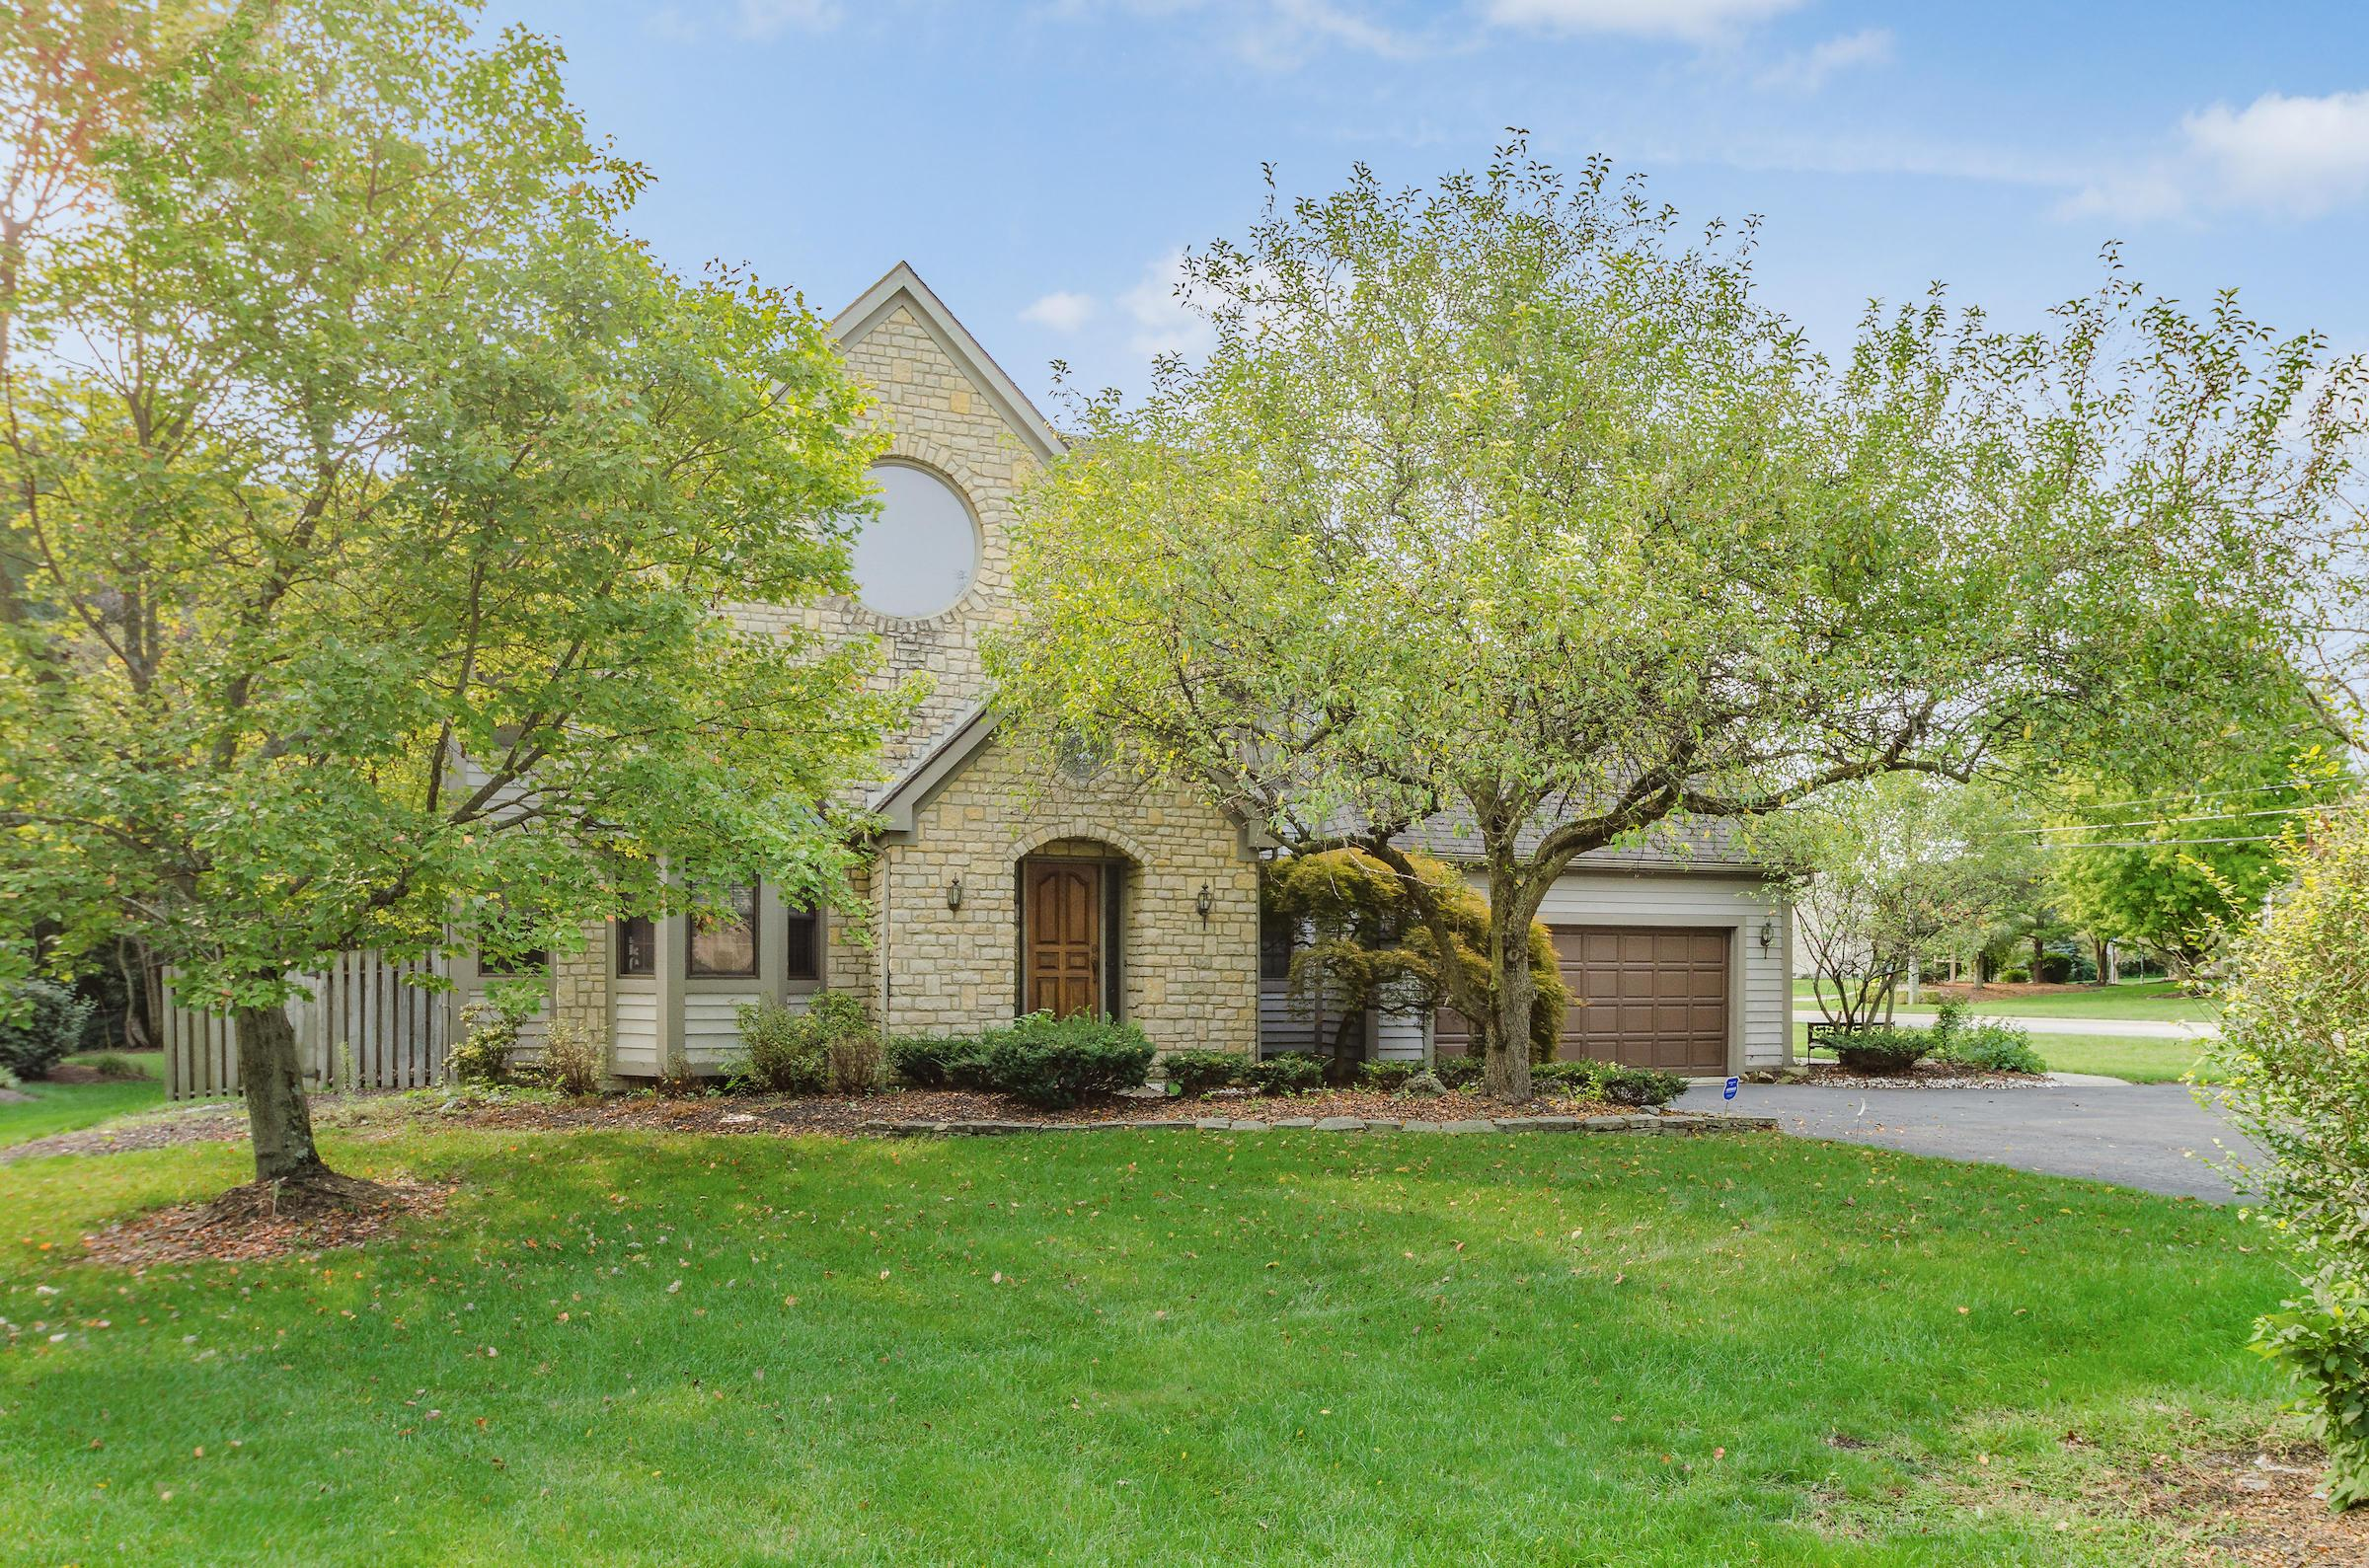 Photo of 4369 Shire Landing Road, Hilliard, OH 43026